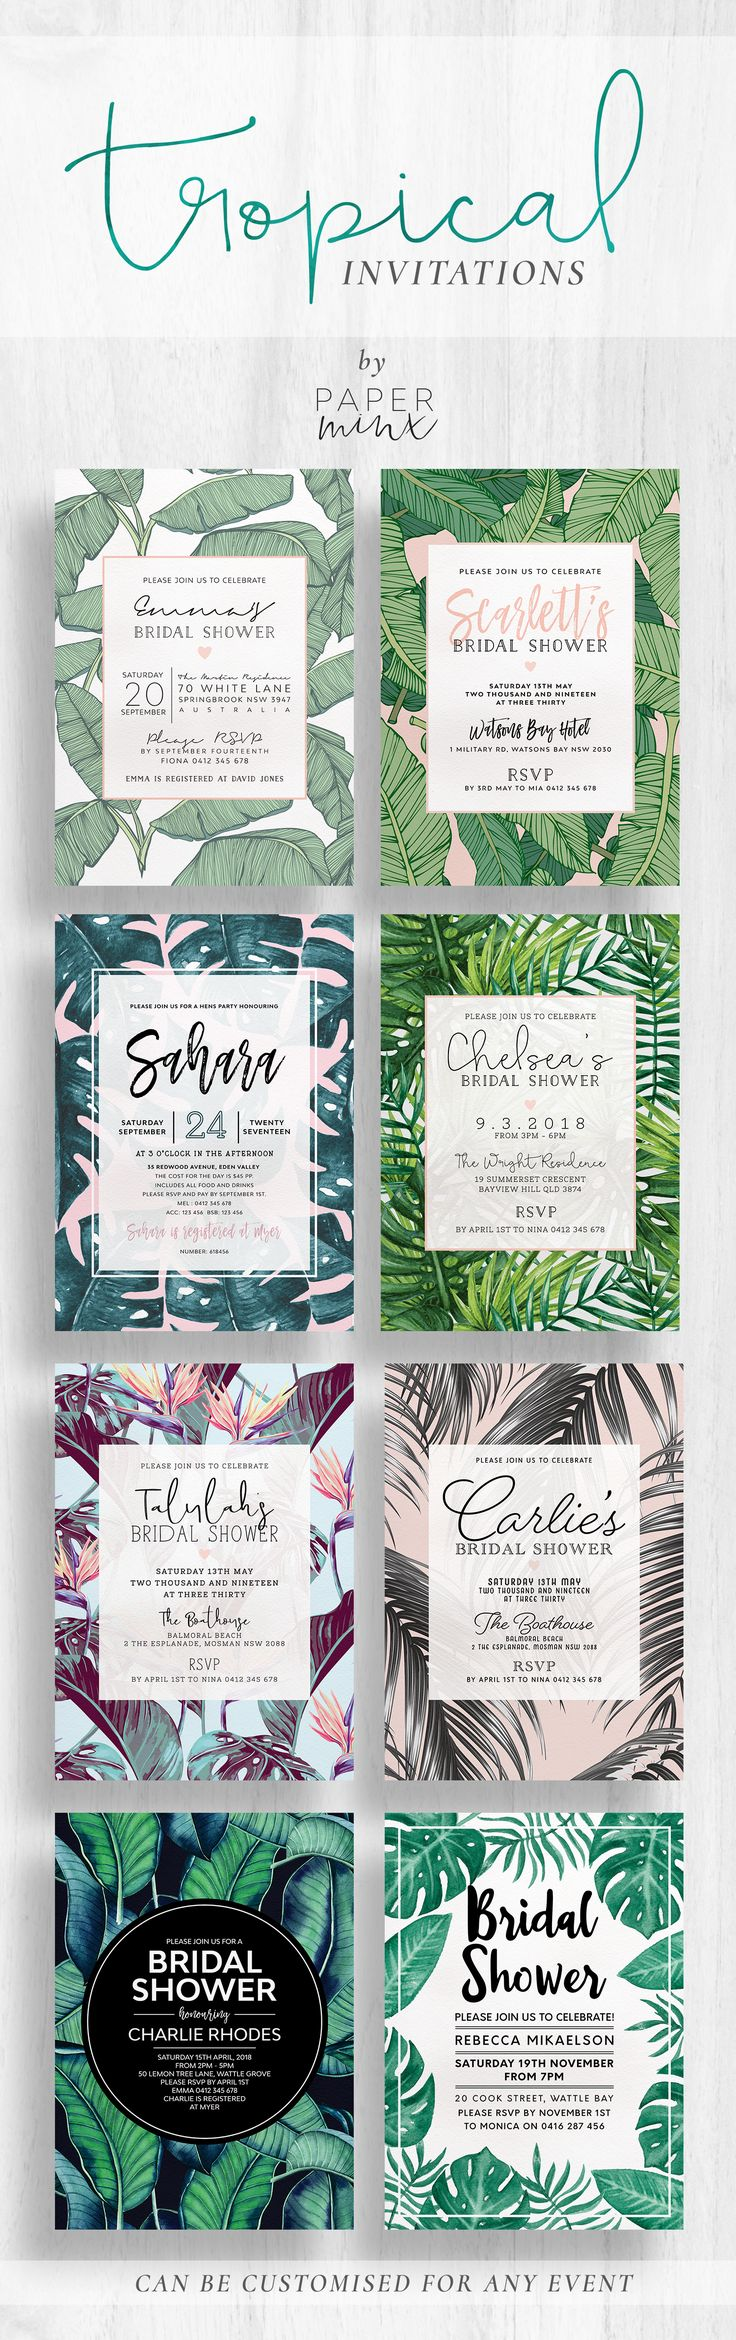 Kitchen Tea Invites 17 Best Ideas About Kitchen Tea Invitations On Pinterest Kitchen